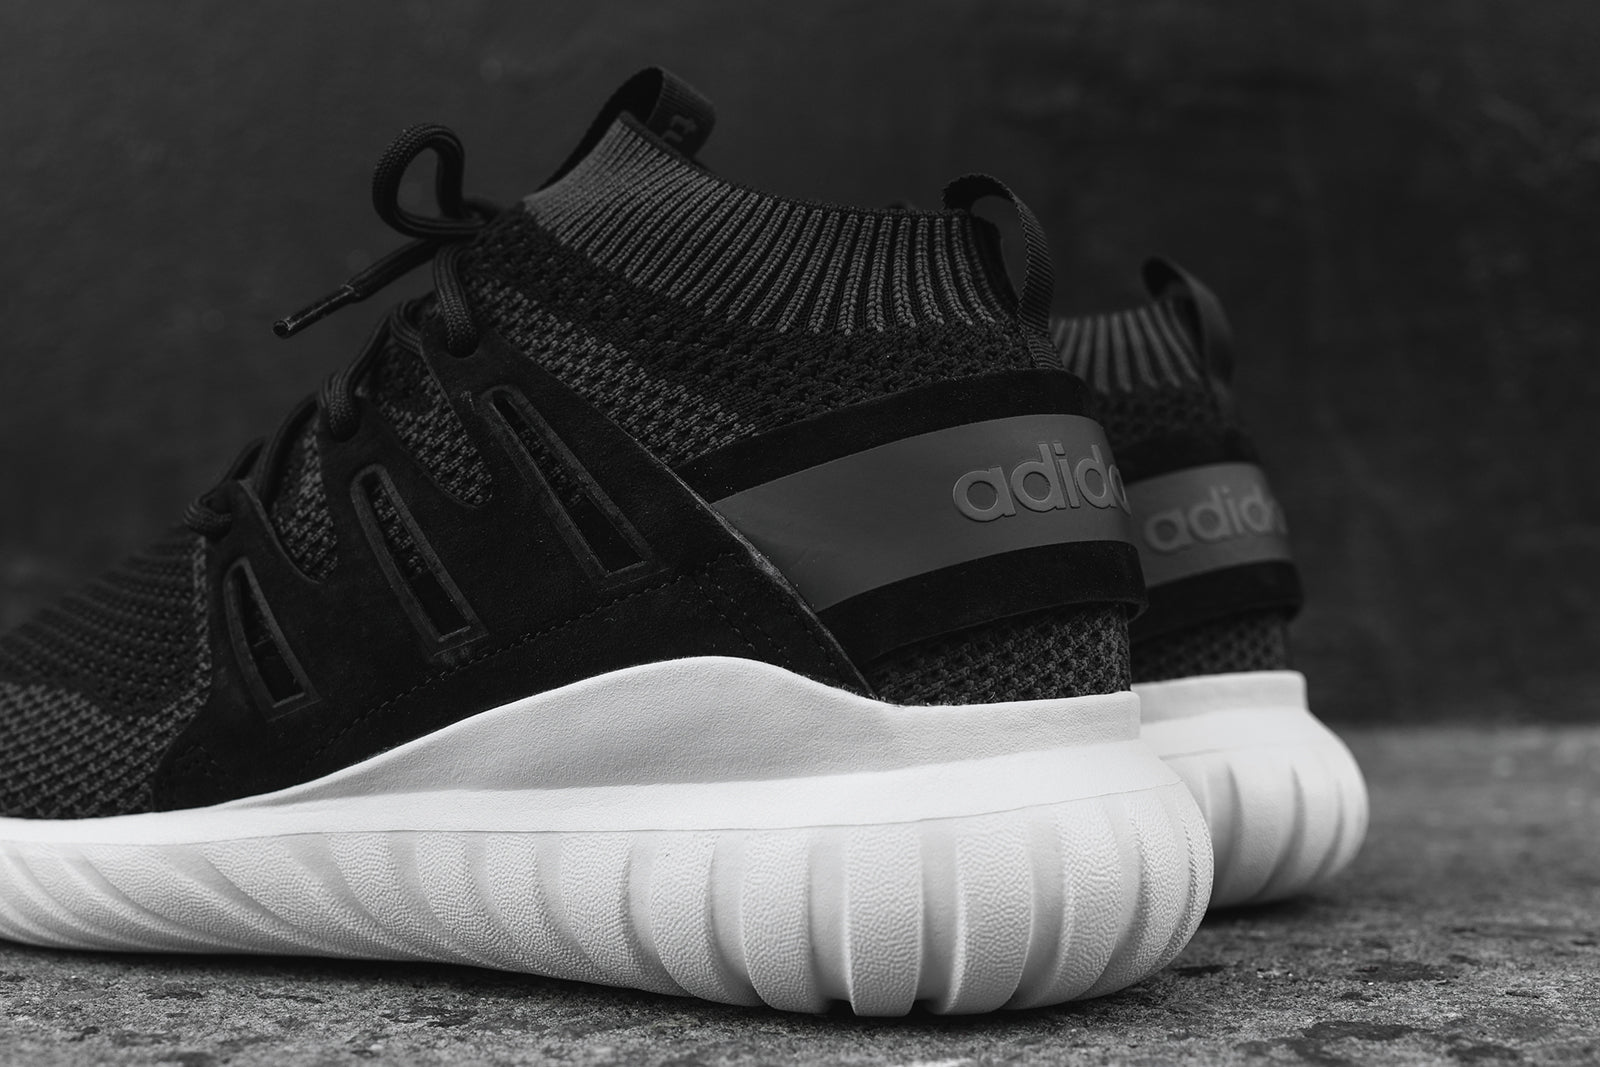 newest collection 1c0f0 46690 adidas Tubular Nova Primeknit - Black / White – Kith